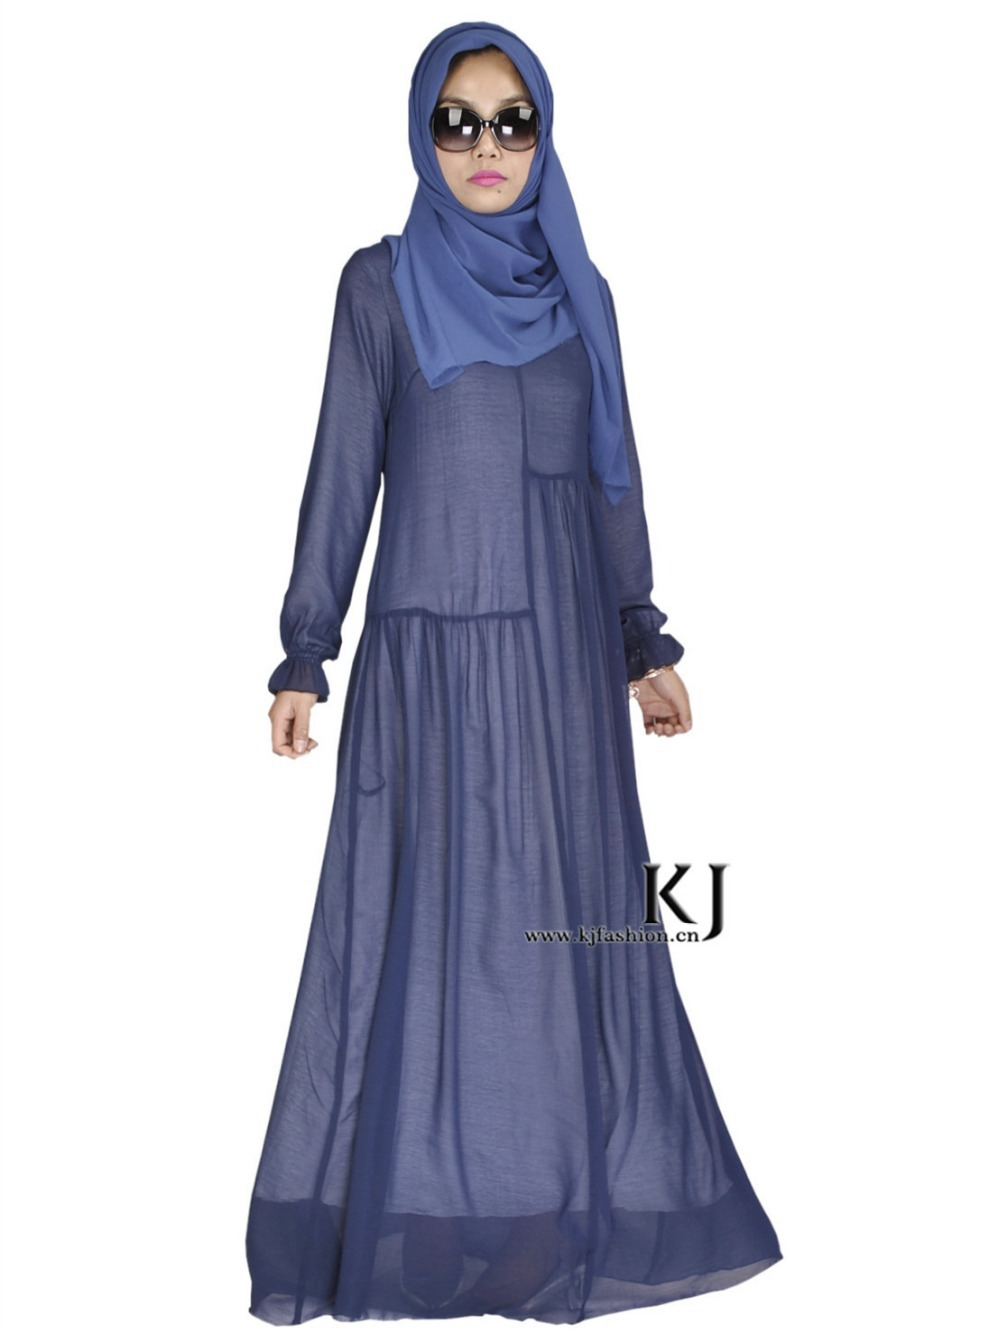 New 2016 Fashion Muslim Abaya Dubai Islamic Clothing For Women Muslim